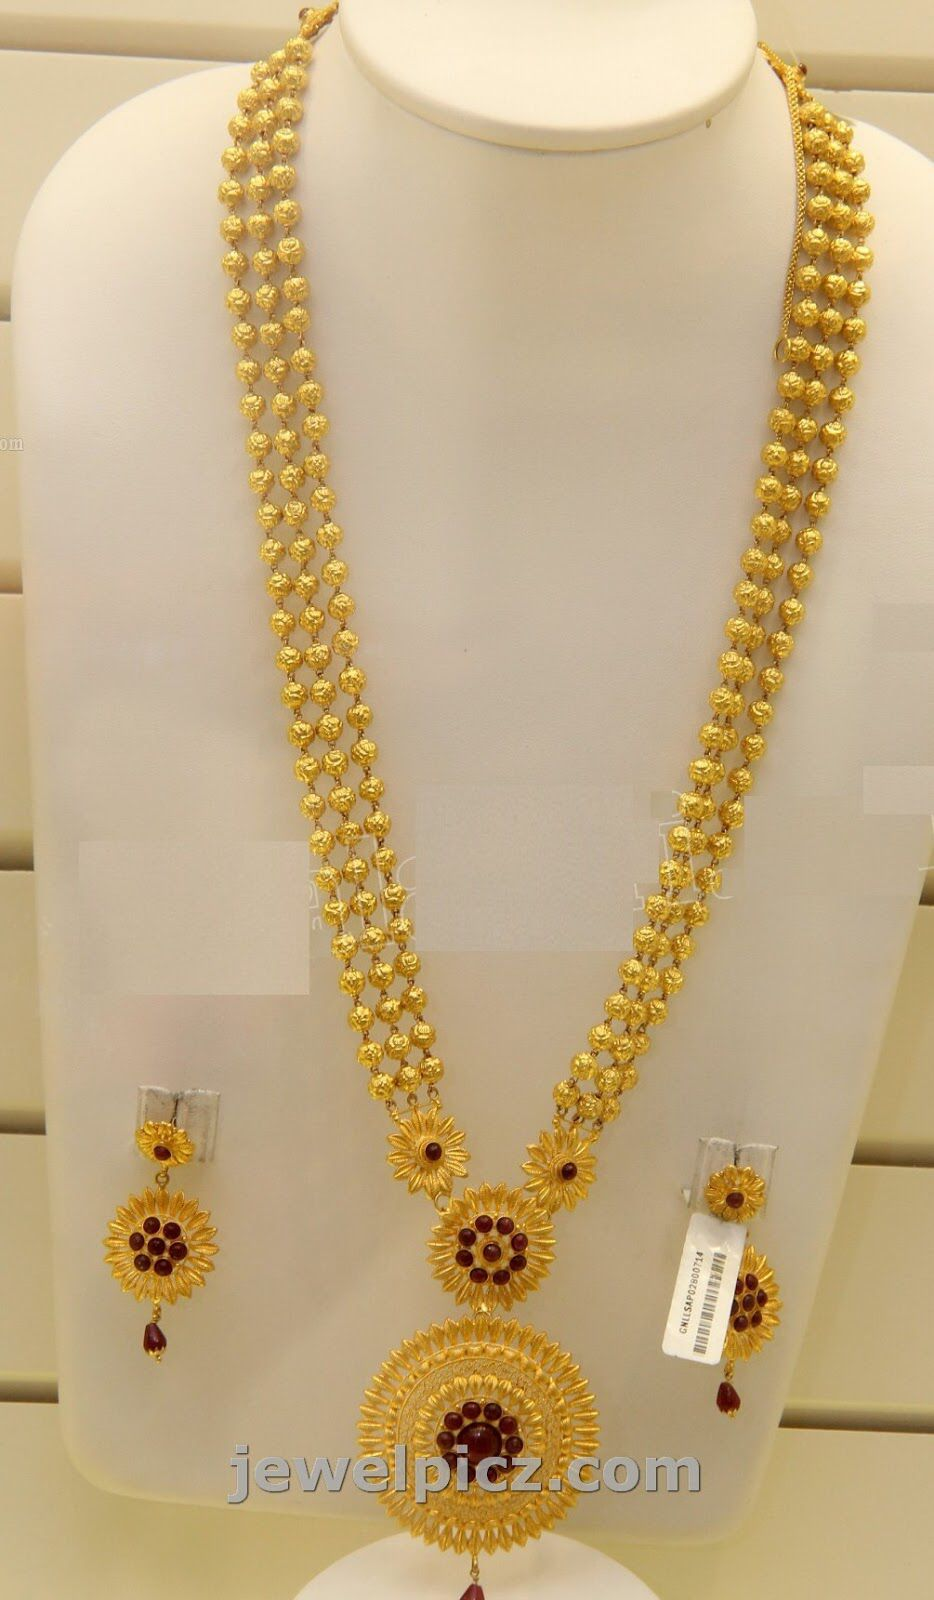 Image From Http Diamantbilds Com Wp Content Uploads 2015 05 Gold Earrings Design Gold Necklace Indian Bridal Jewelry Gold Necklace Designs Gold Long Necklace